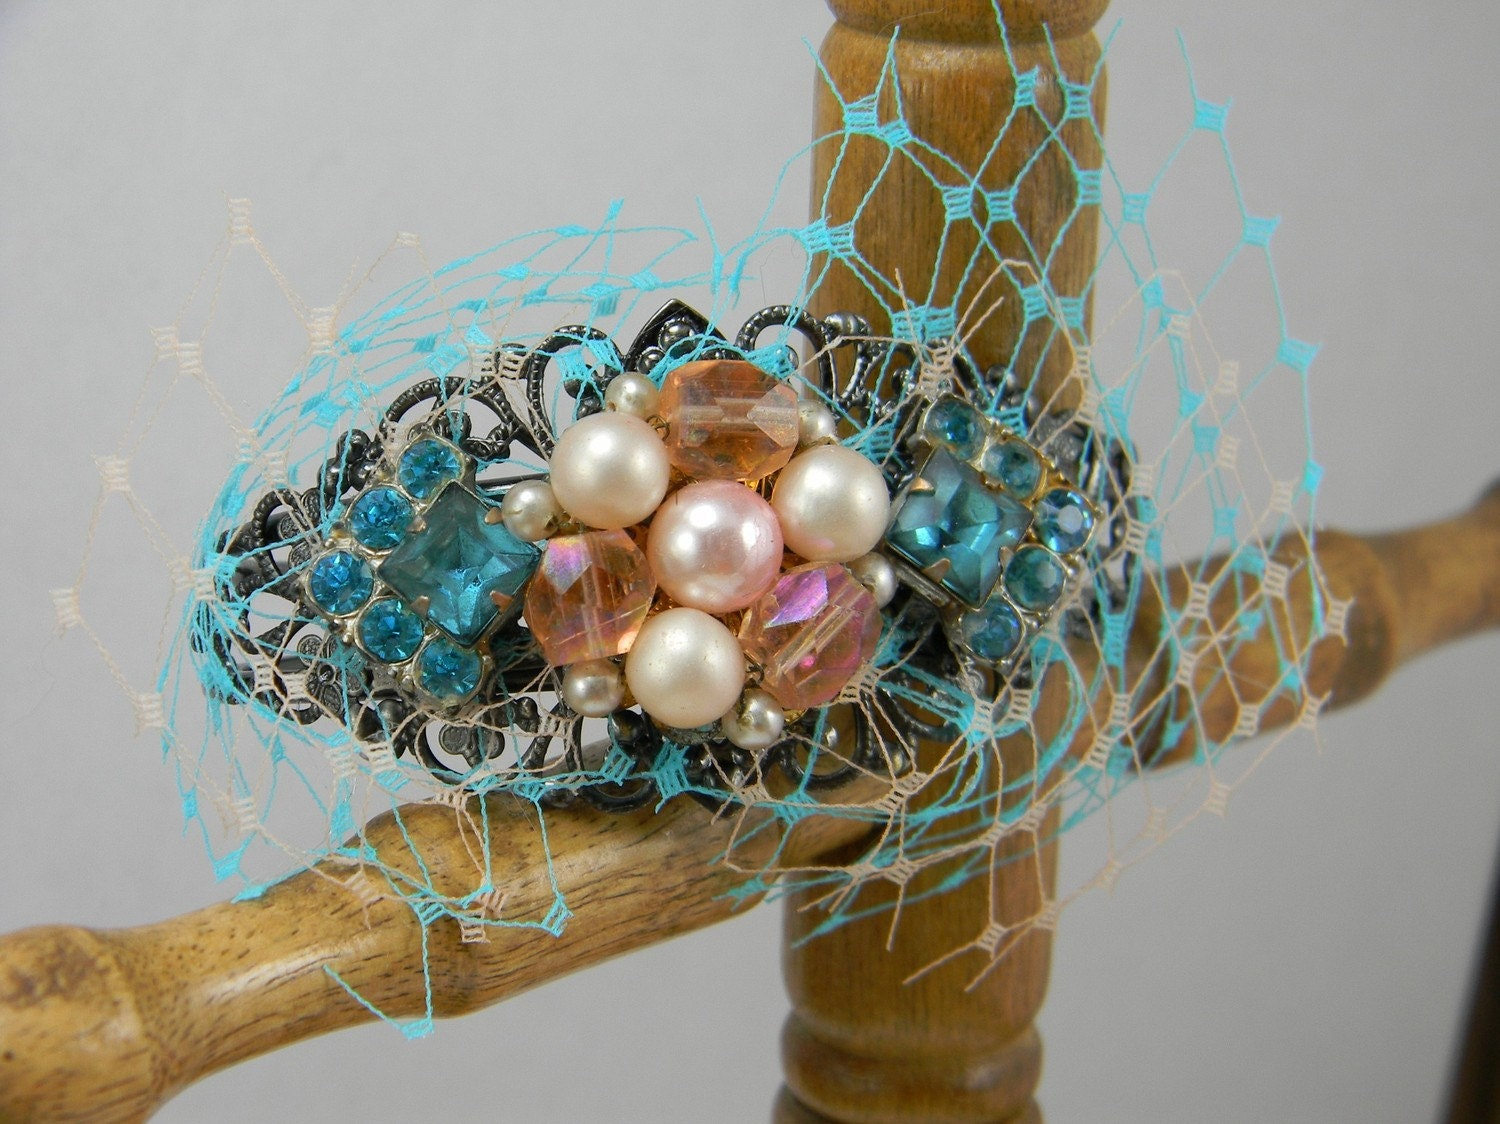 Turquoise Blue and Peach Collage Cuff with Vintage Jewelry and Bridal French Netting